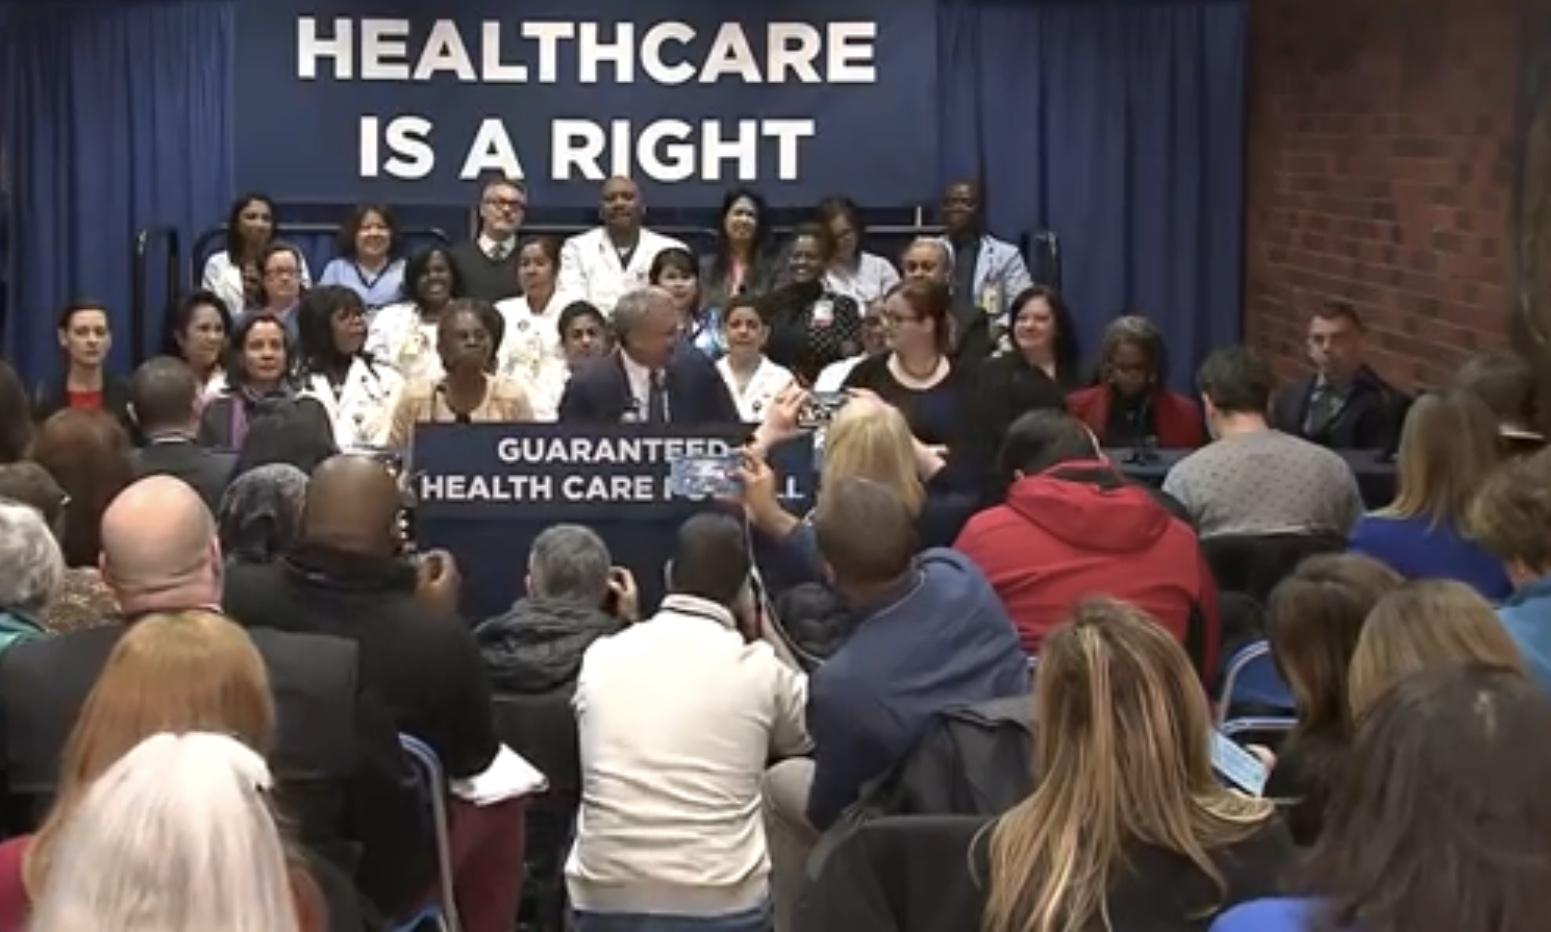 De Blasio: Healthcare Plan Covers All New Yorkers, Even Undocumented